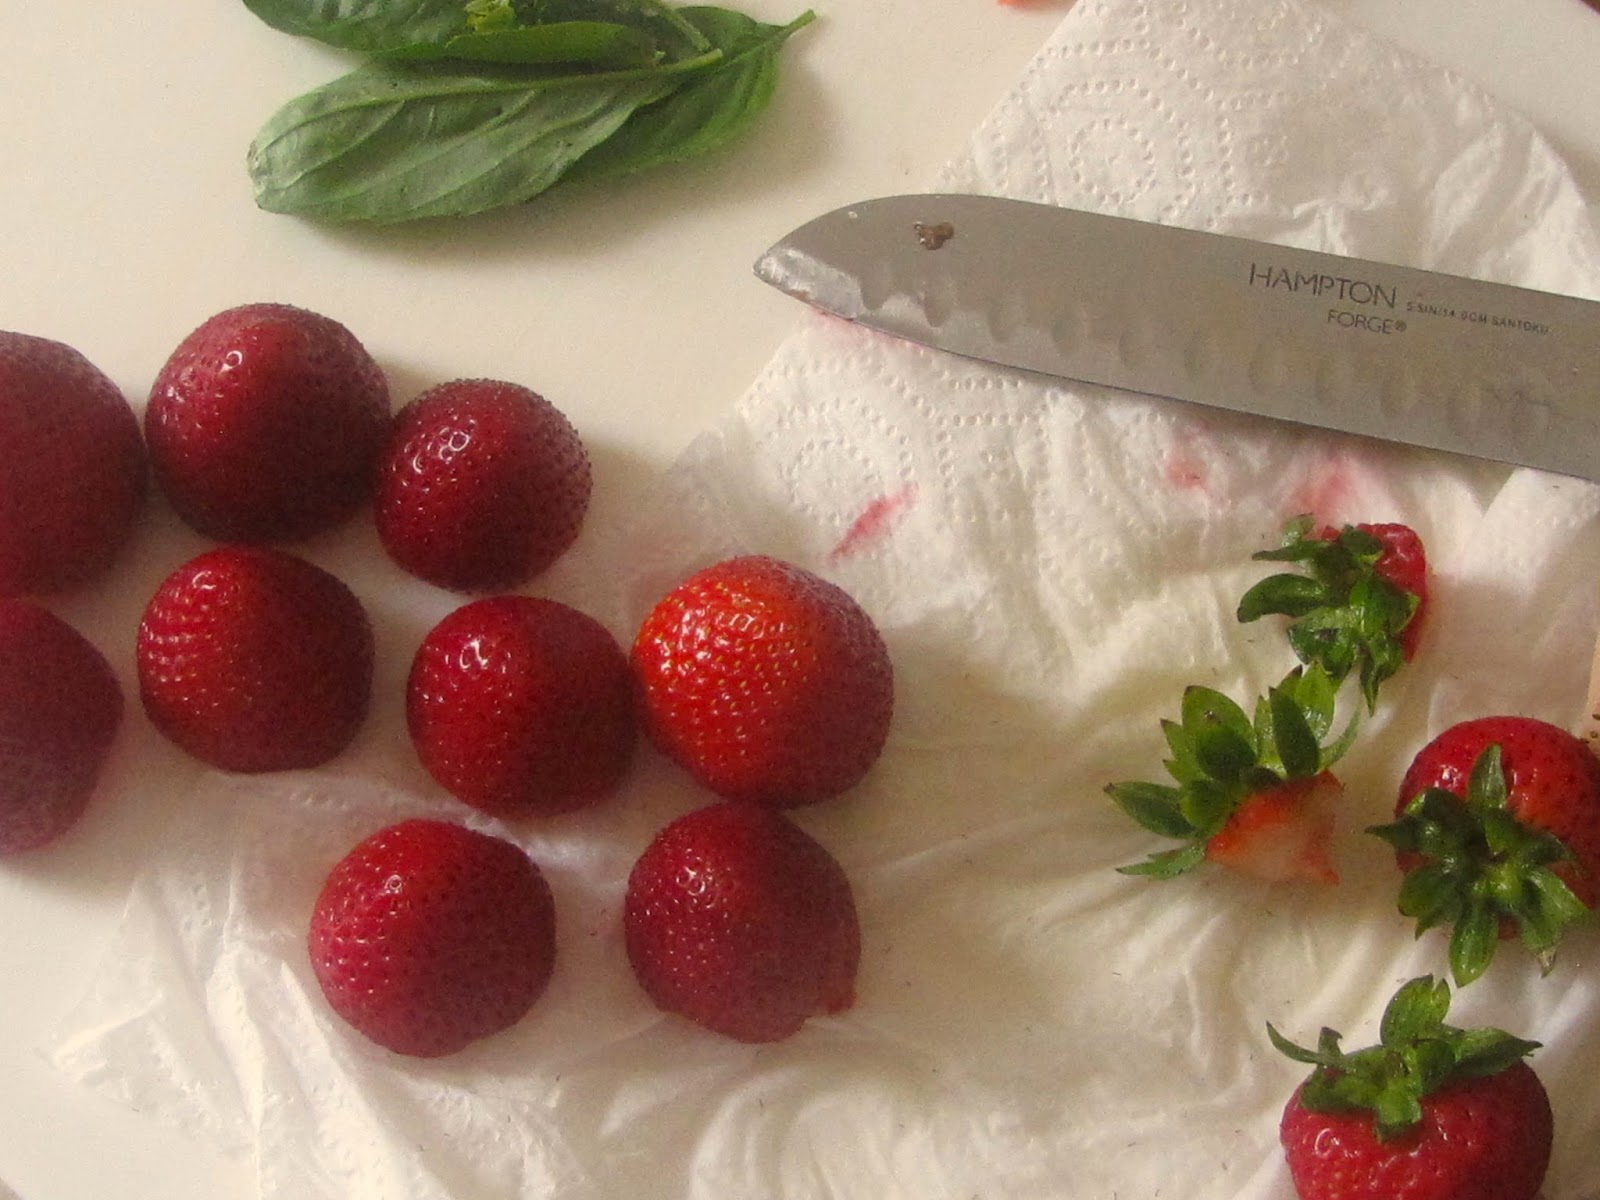 Hulled Strawberries with basil leaves on a white board